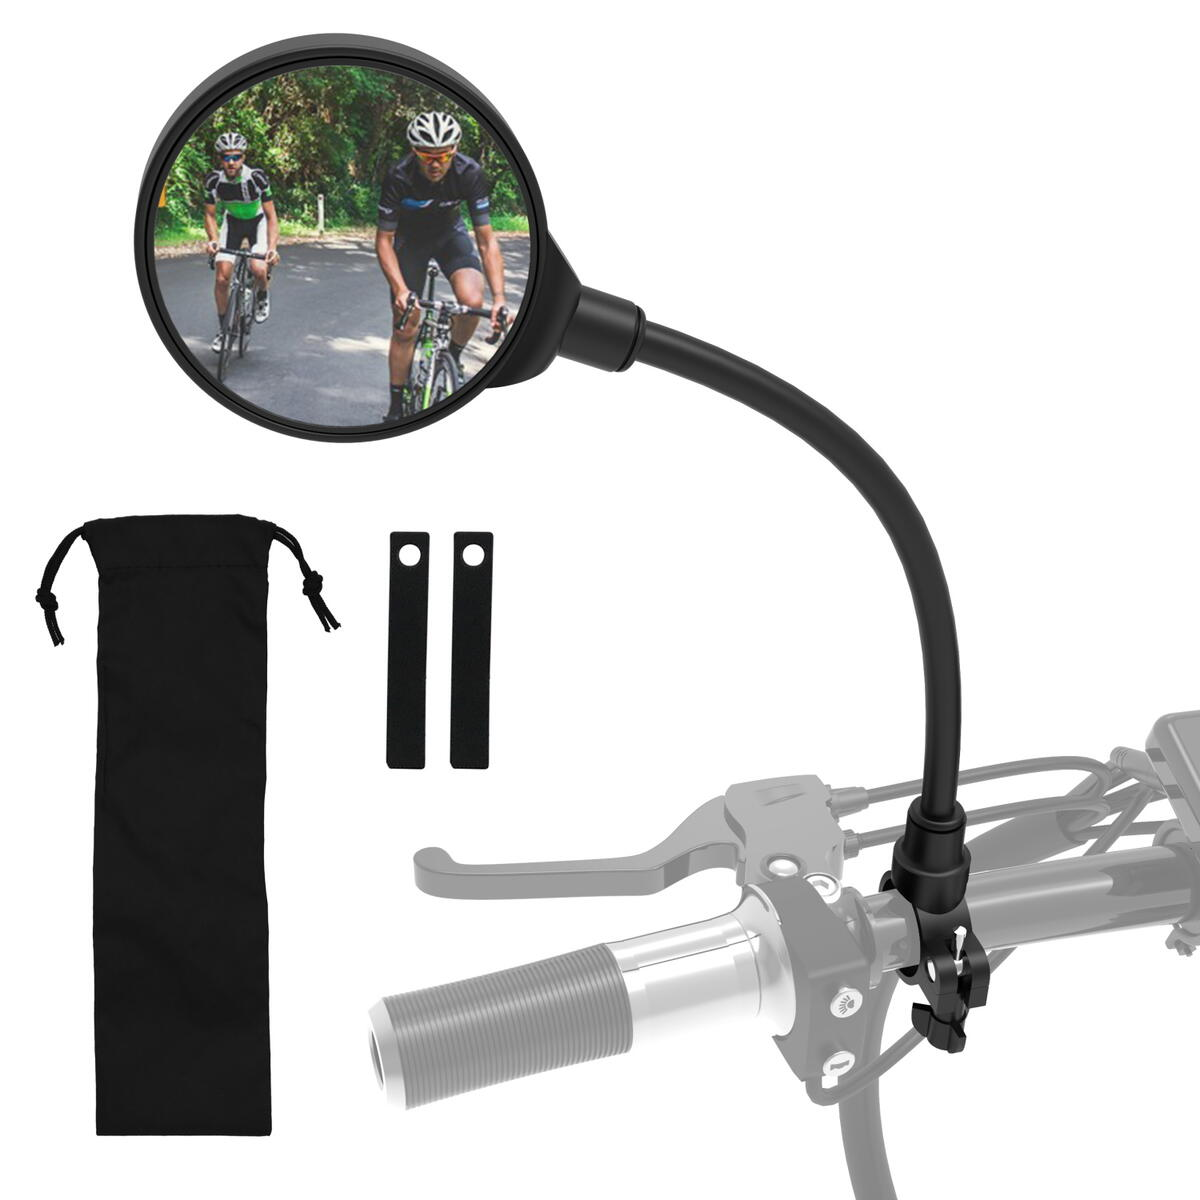 ROYOR Wide Angle Bike Mirror, 360° Adjustable Rotatable Bicycle Mirror